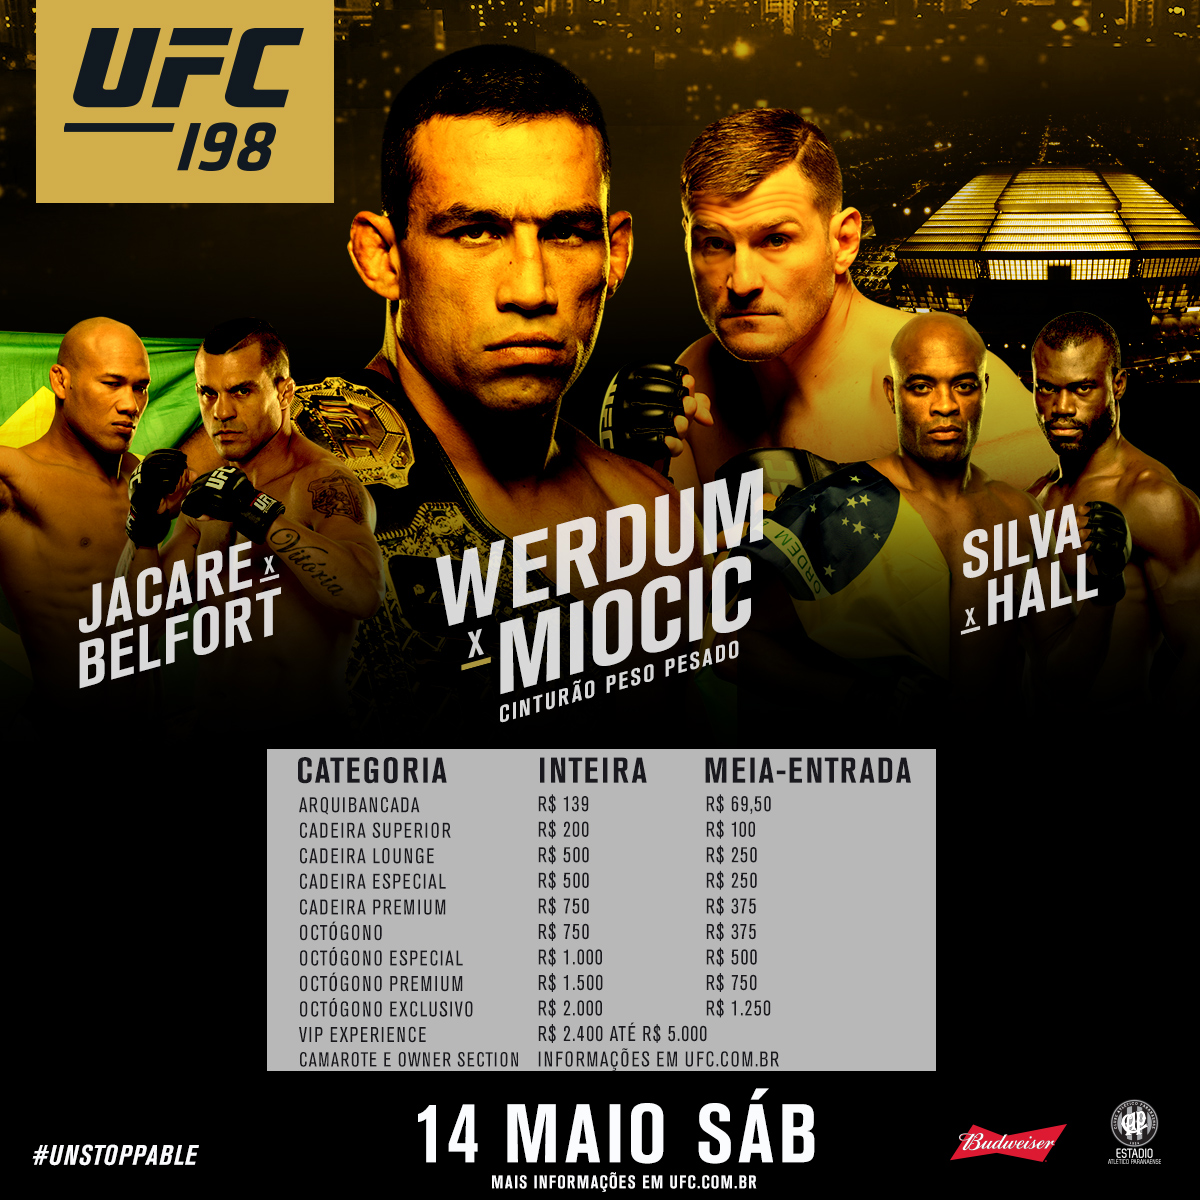 Imagens UFC 198: Werdum x Miocic Torrent 1080p 720p BluRay Download